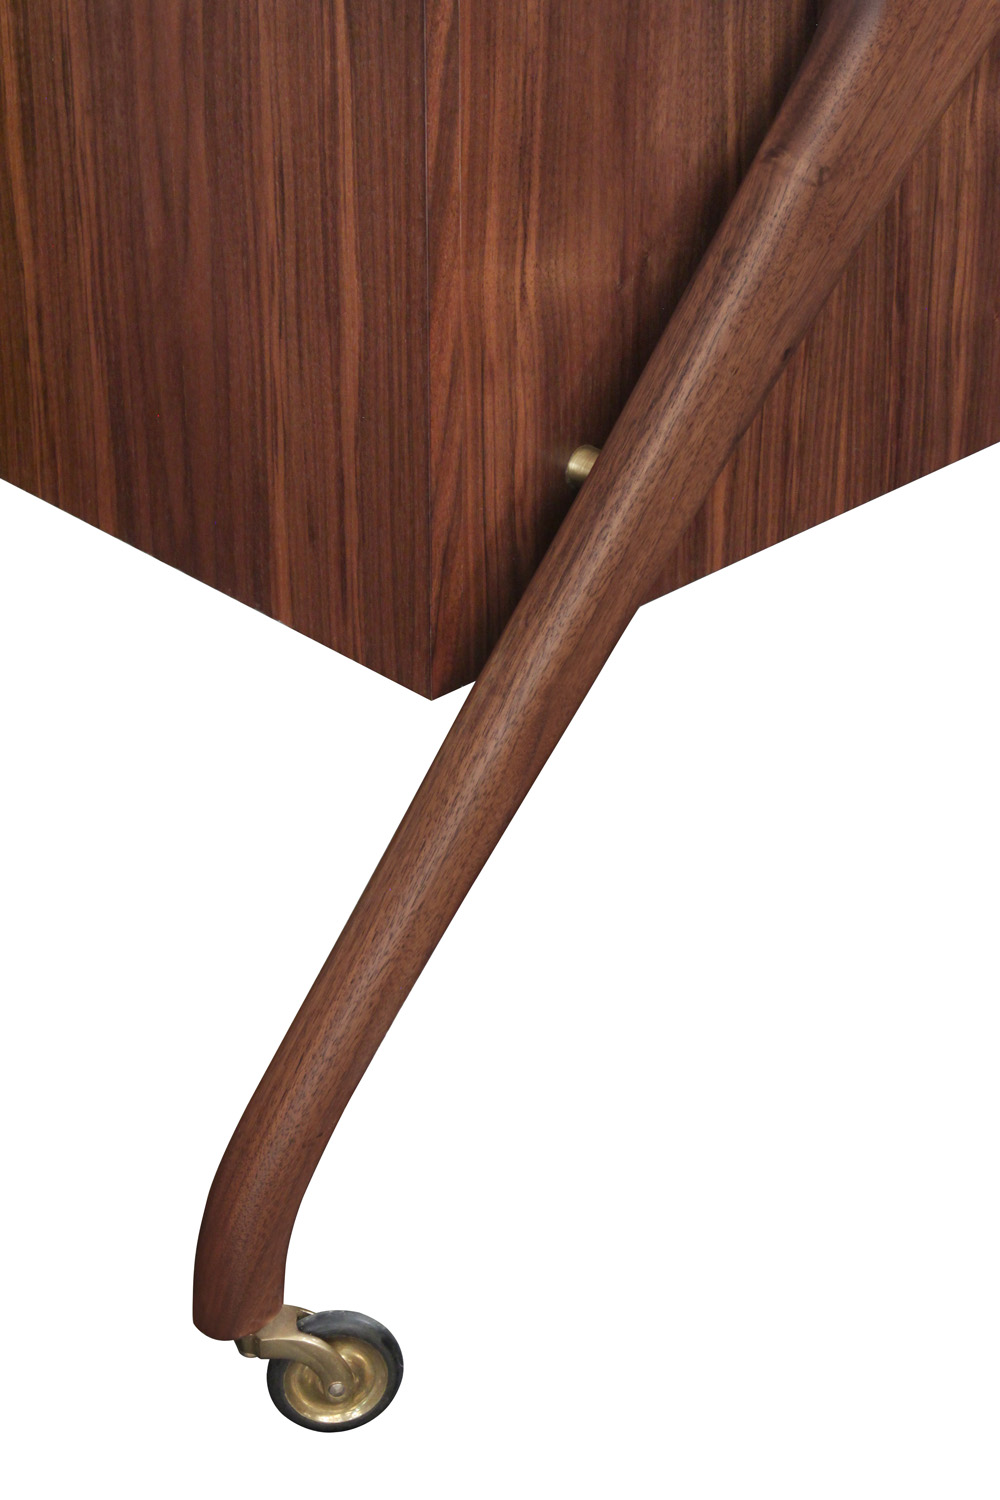 Kagan 120 walnut+white laminate servingcart20 detail7 hires.jpg